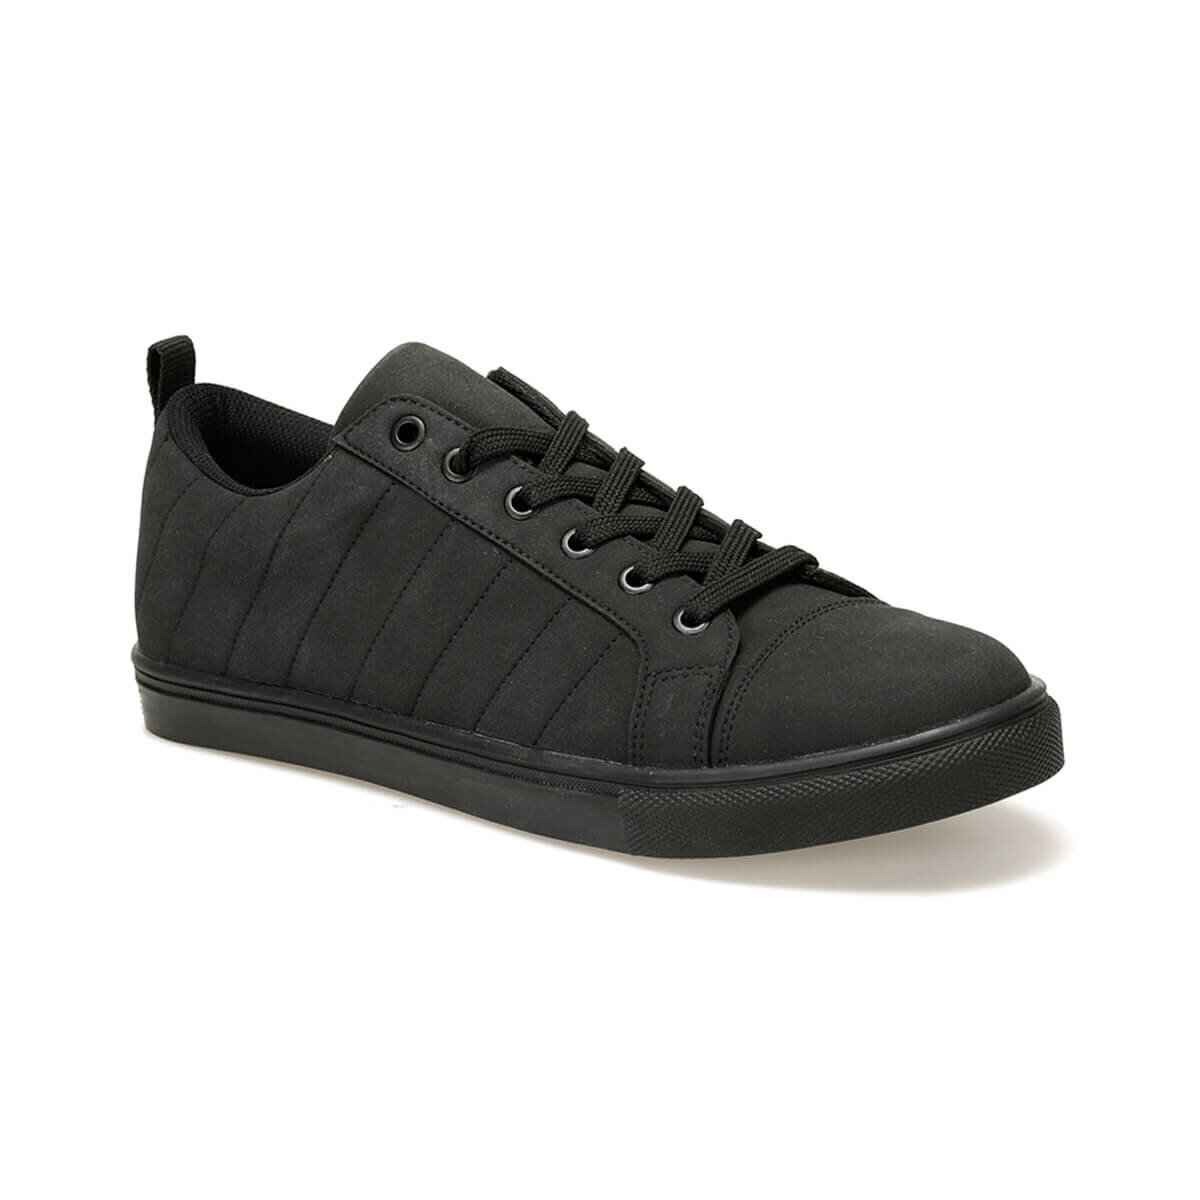 FLO KP-012 Black Male Shoes Panama Club